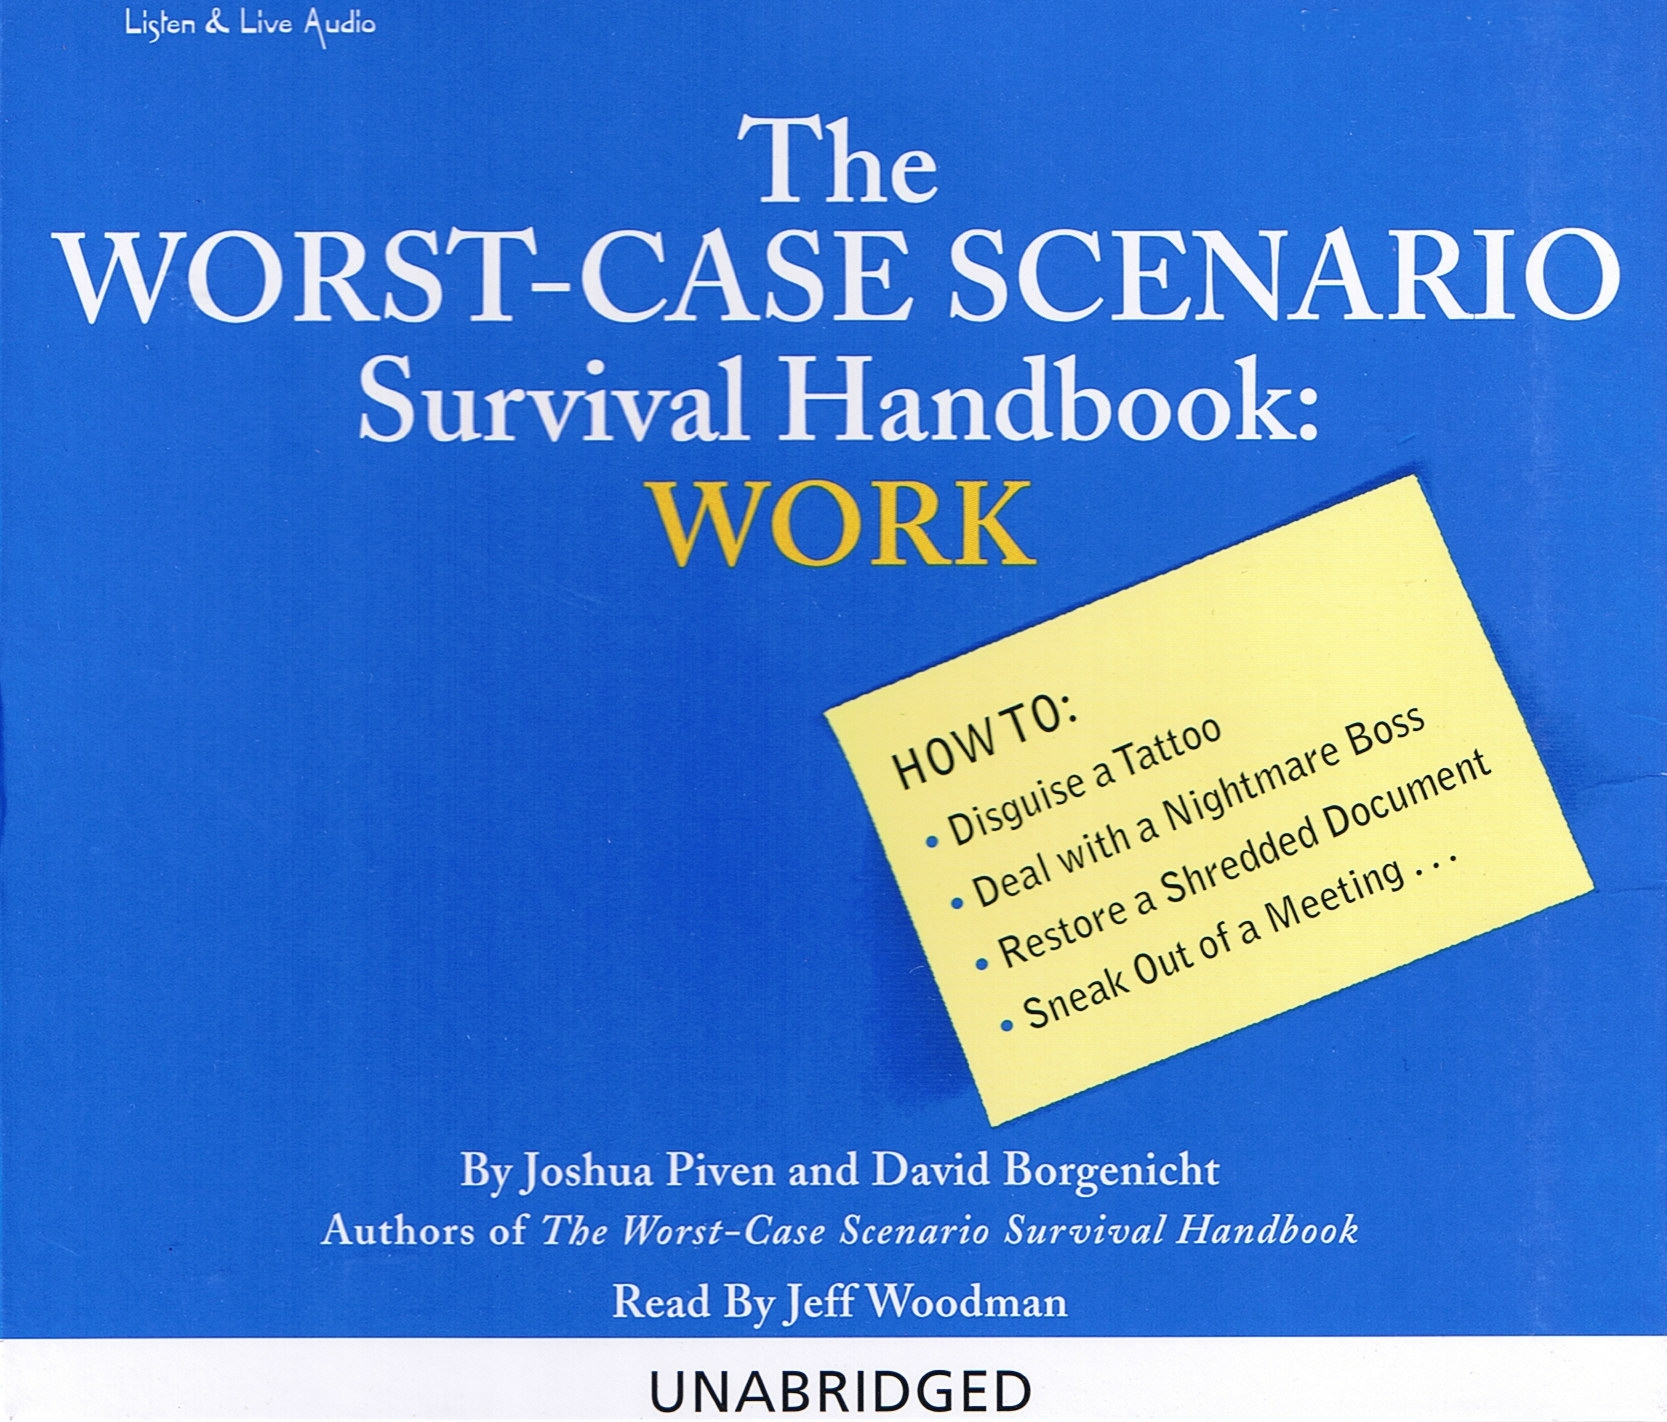 The Worst-Case Scenario Survival Handbook: Work [2CD]